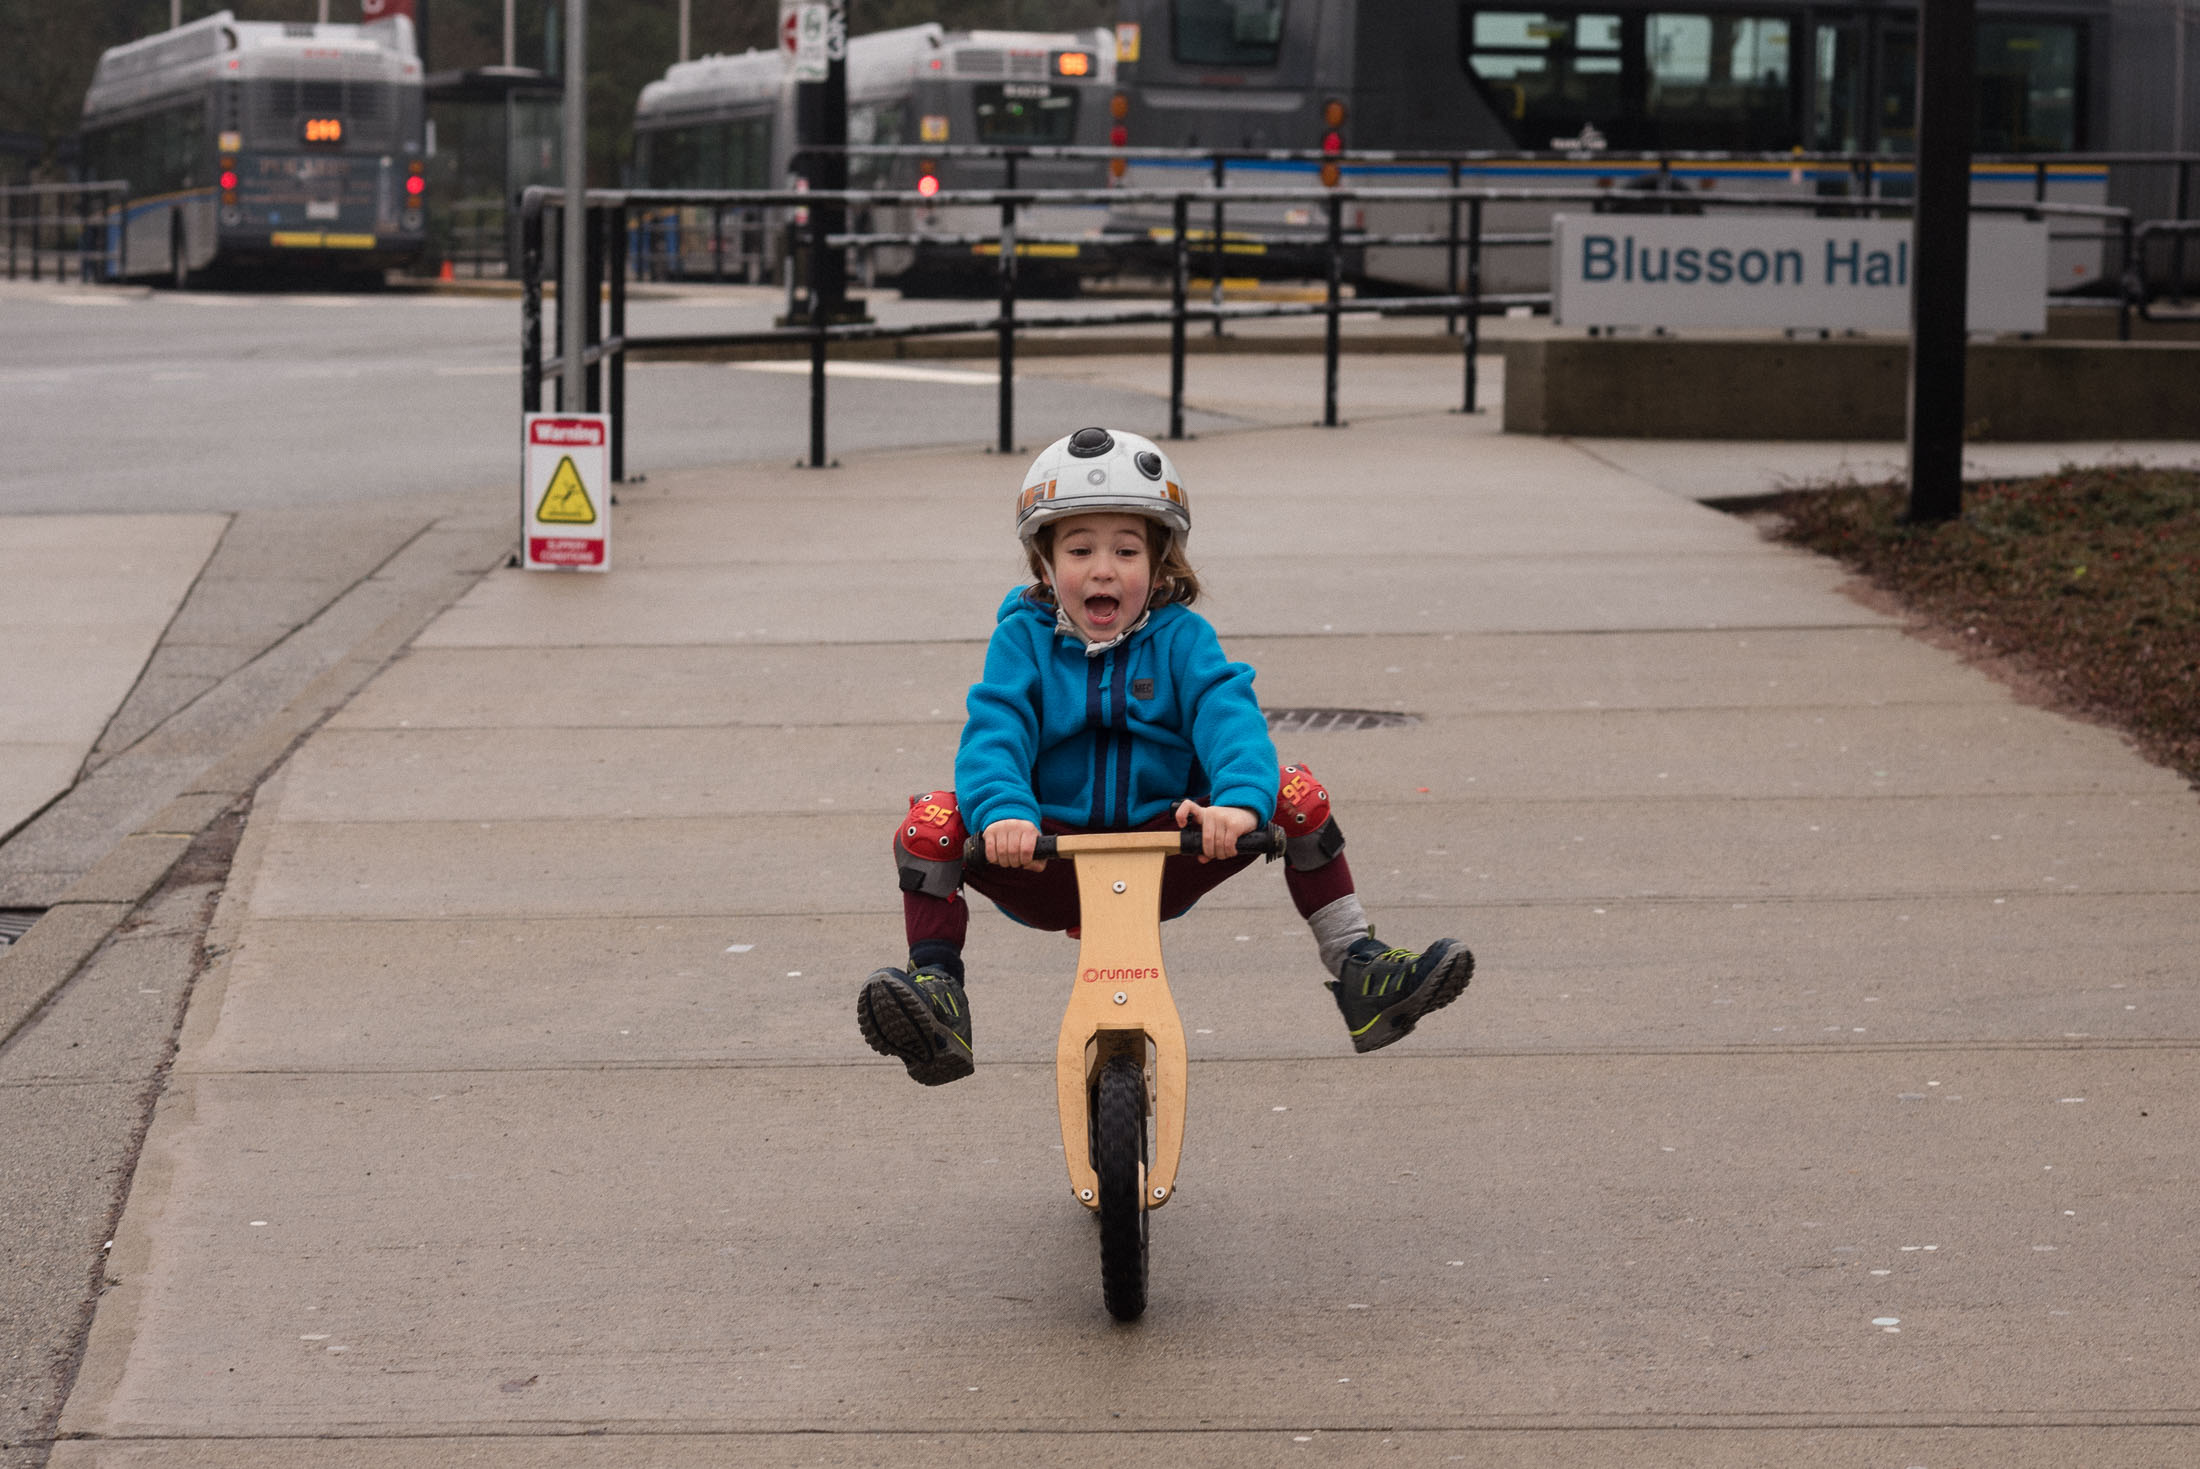 A boy lifts his feet while riding his bike in Burnaby, BC.